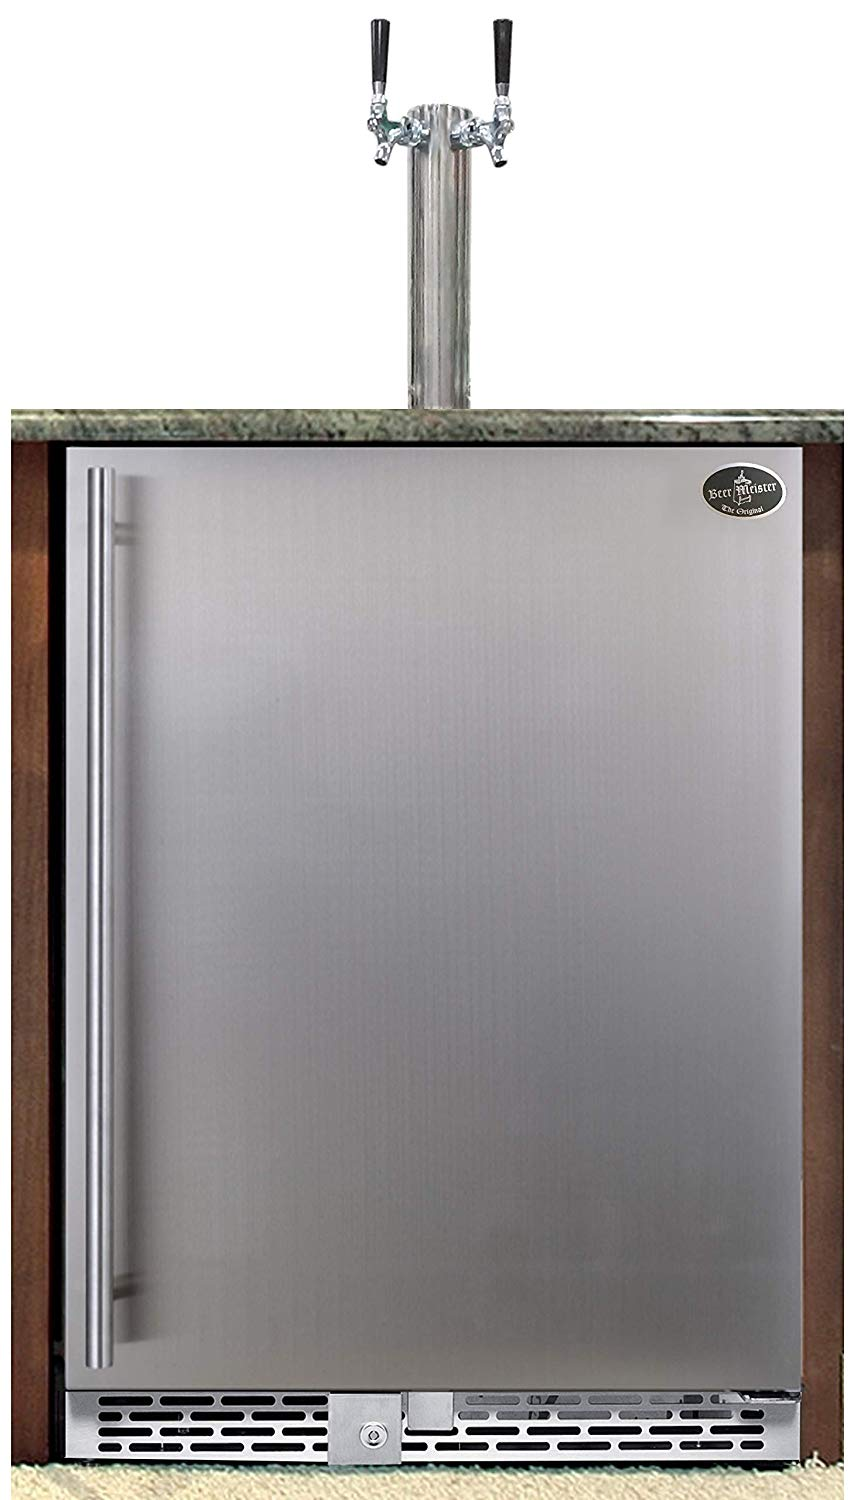 Beer Meister Dual Tower with Stainless Door Built-In Kegerator Review